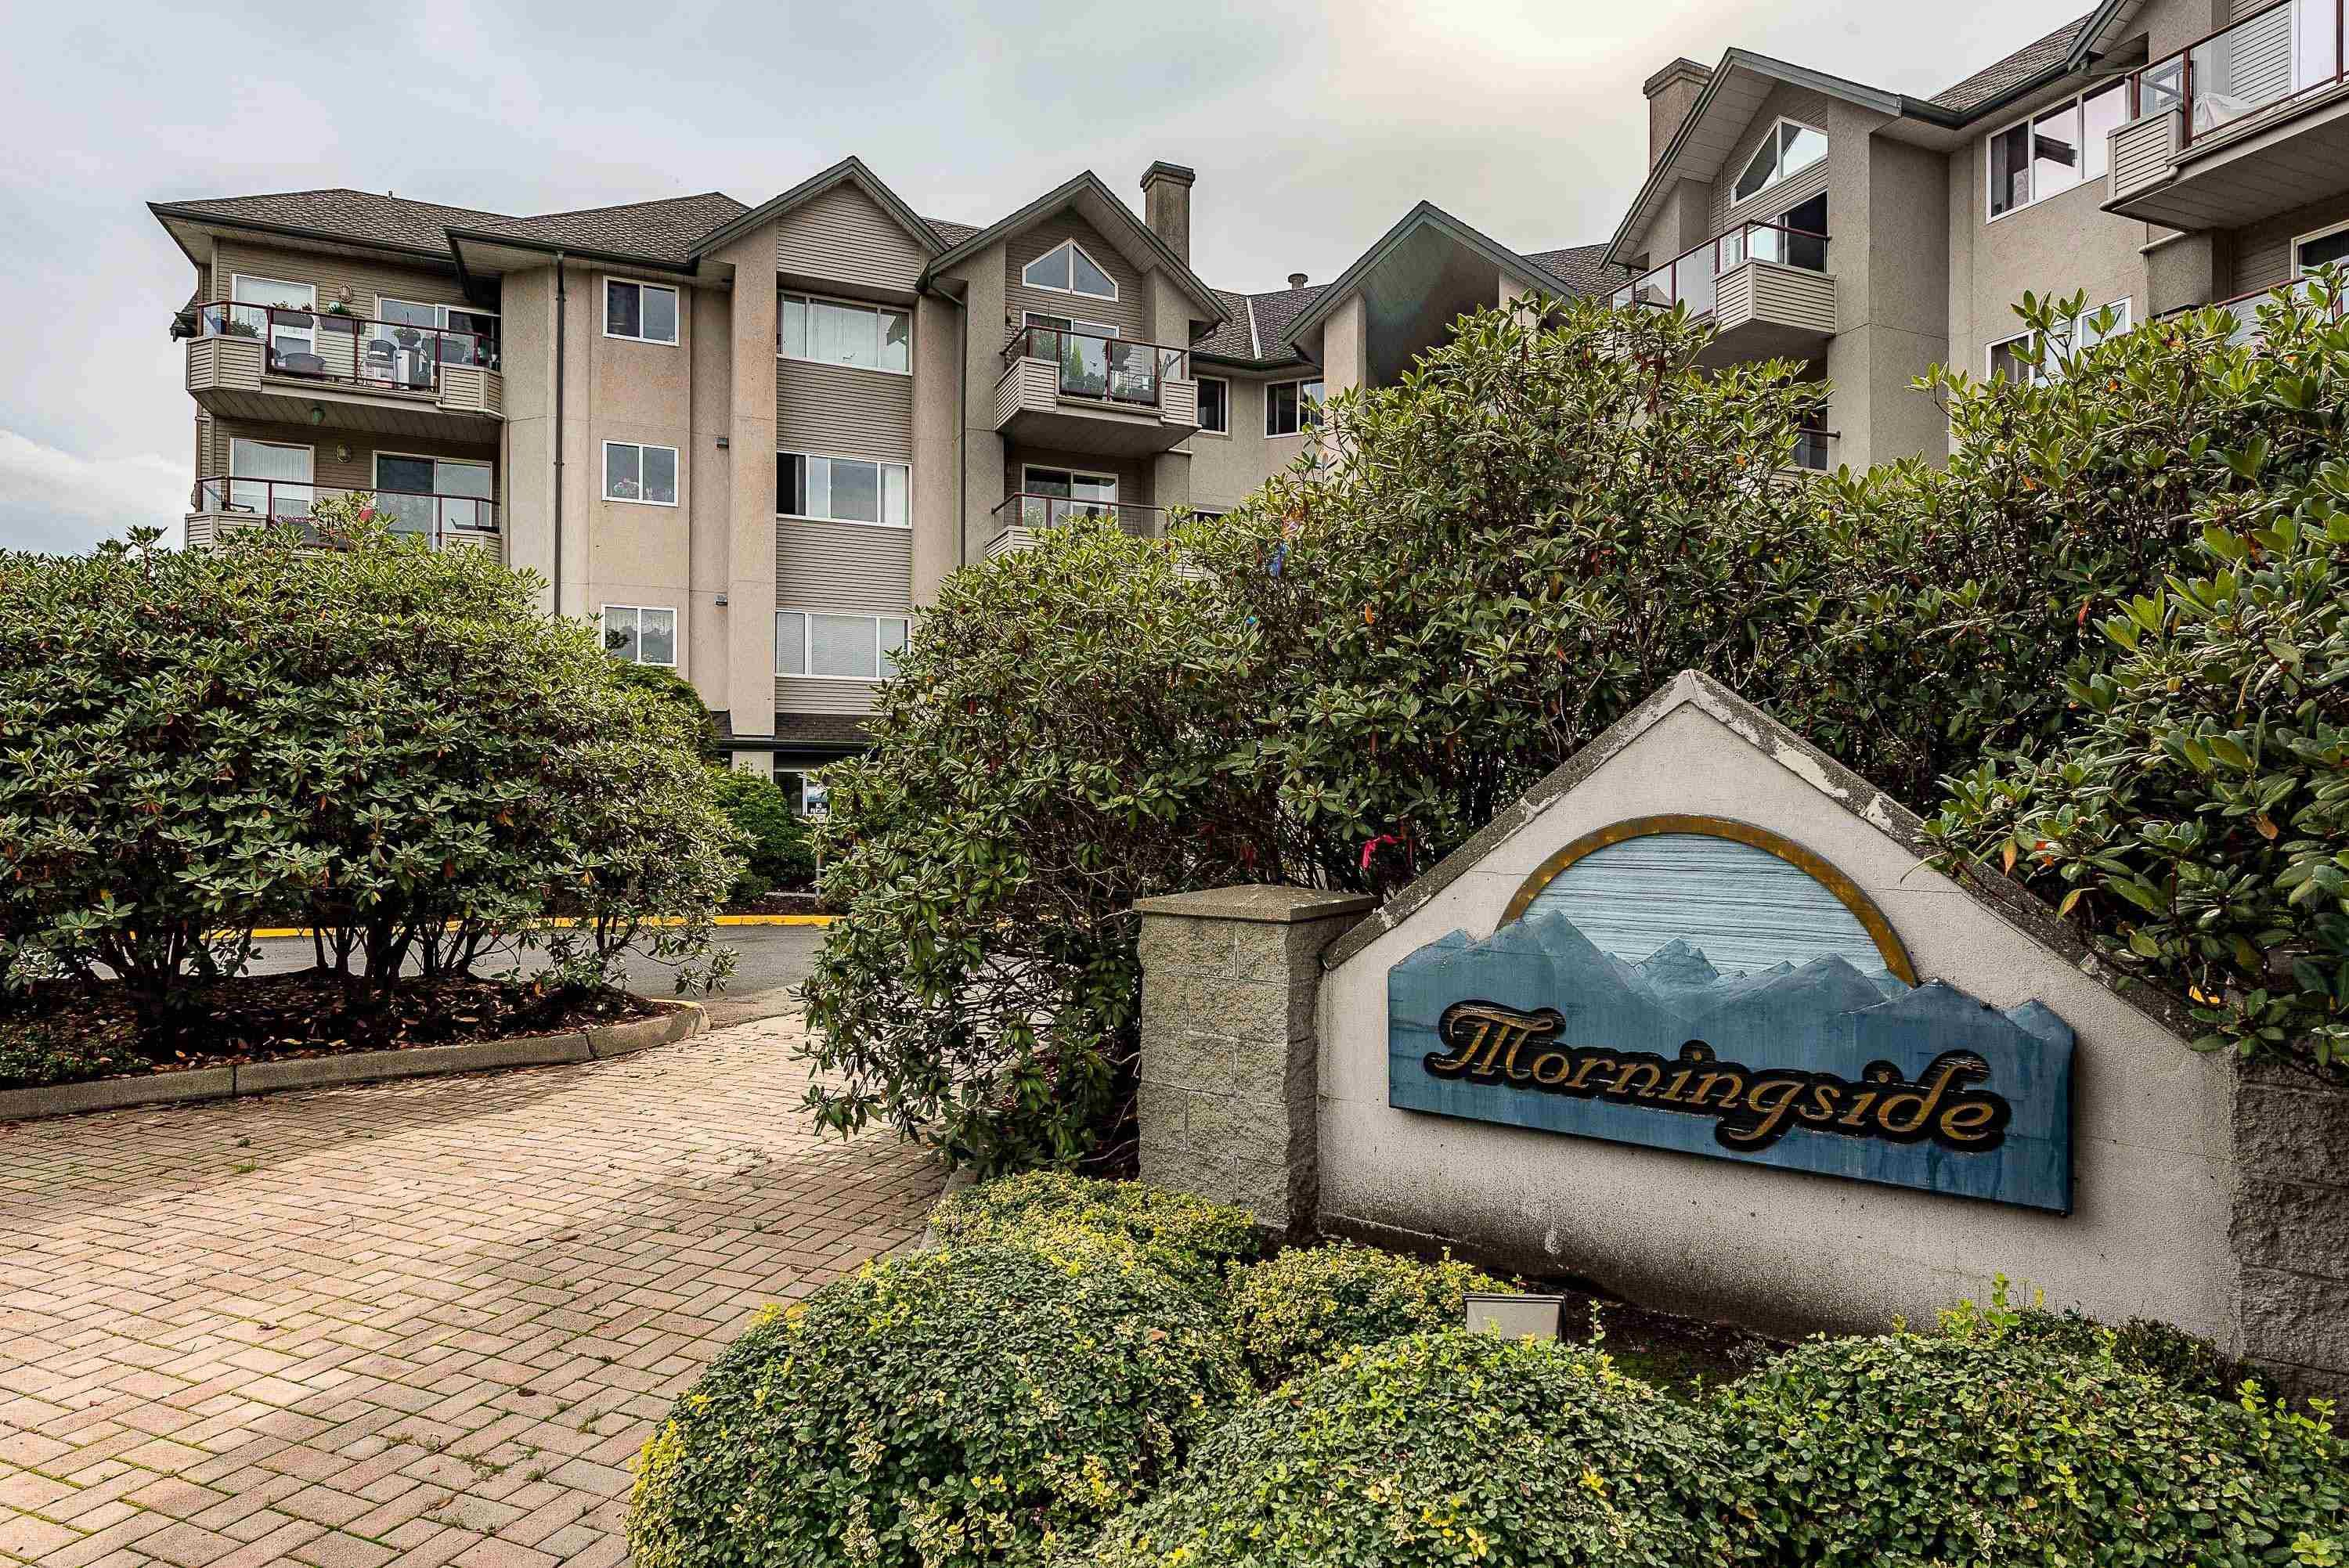 """Main Photo: 112 45520 KNIGHT Road in Chilliwack: Sardis West Vedder Rd Condo for sale in """"MORNINGSIDE"""" (Sardis)  : MLS®# R2616974"""